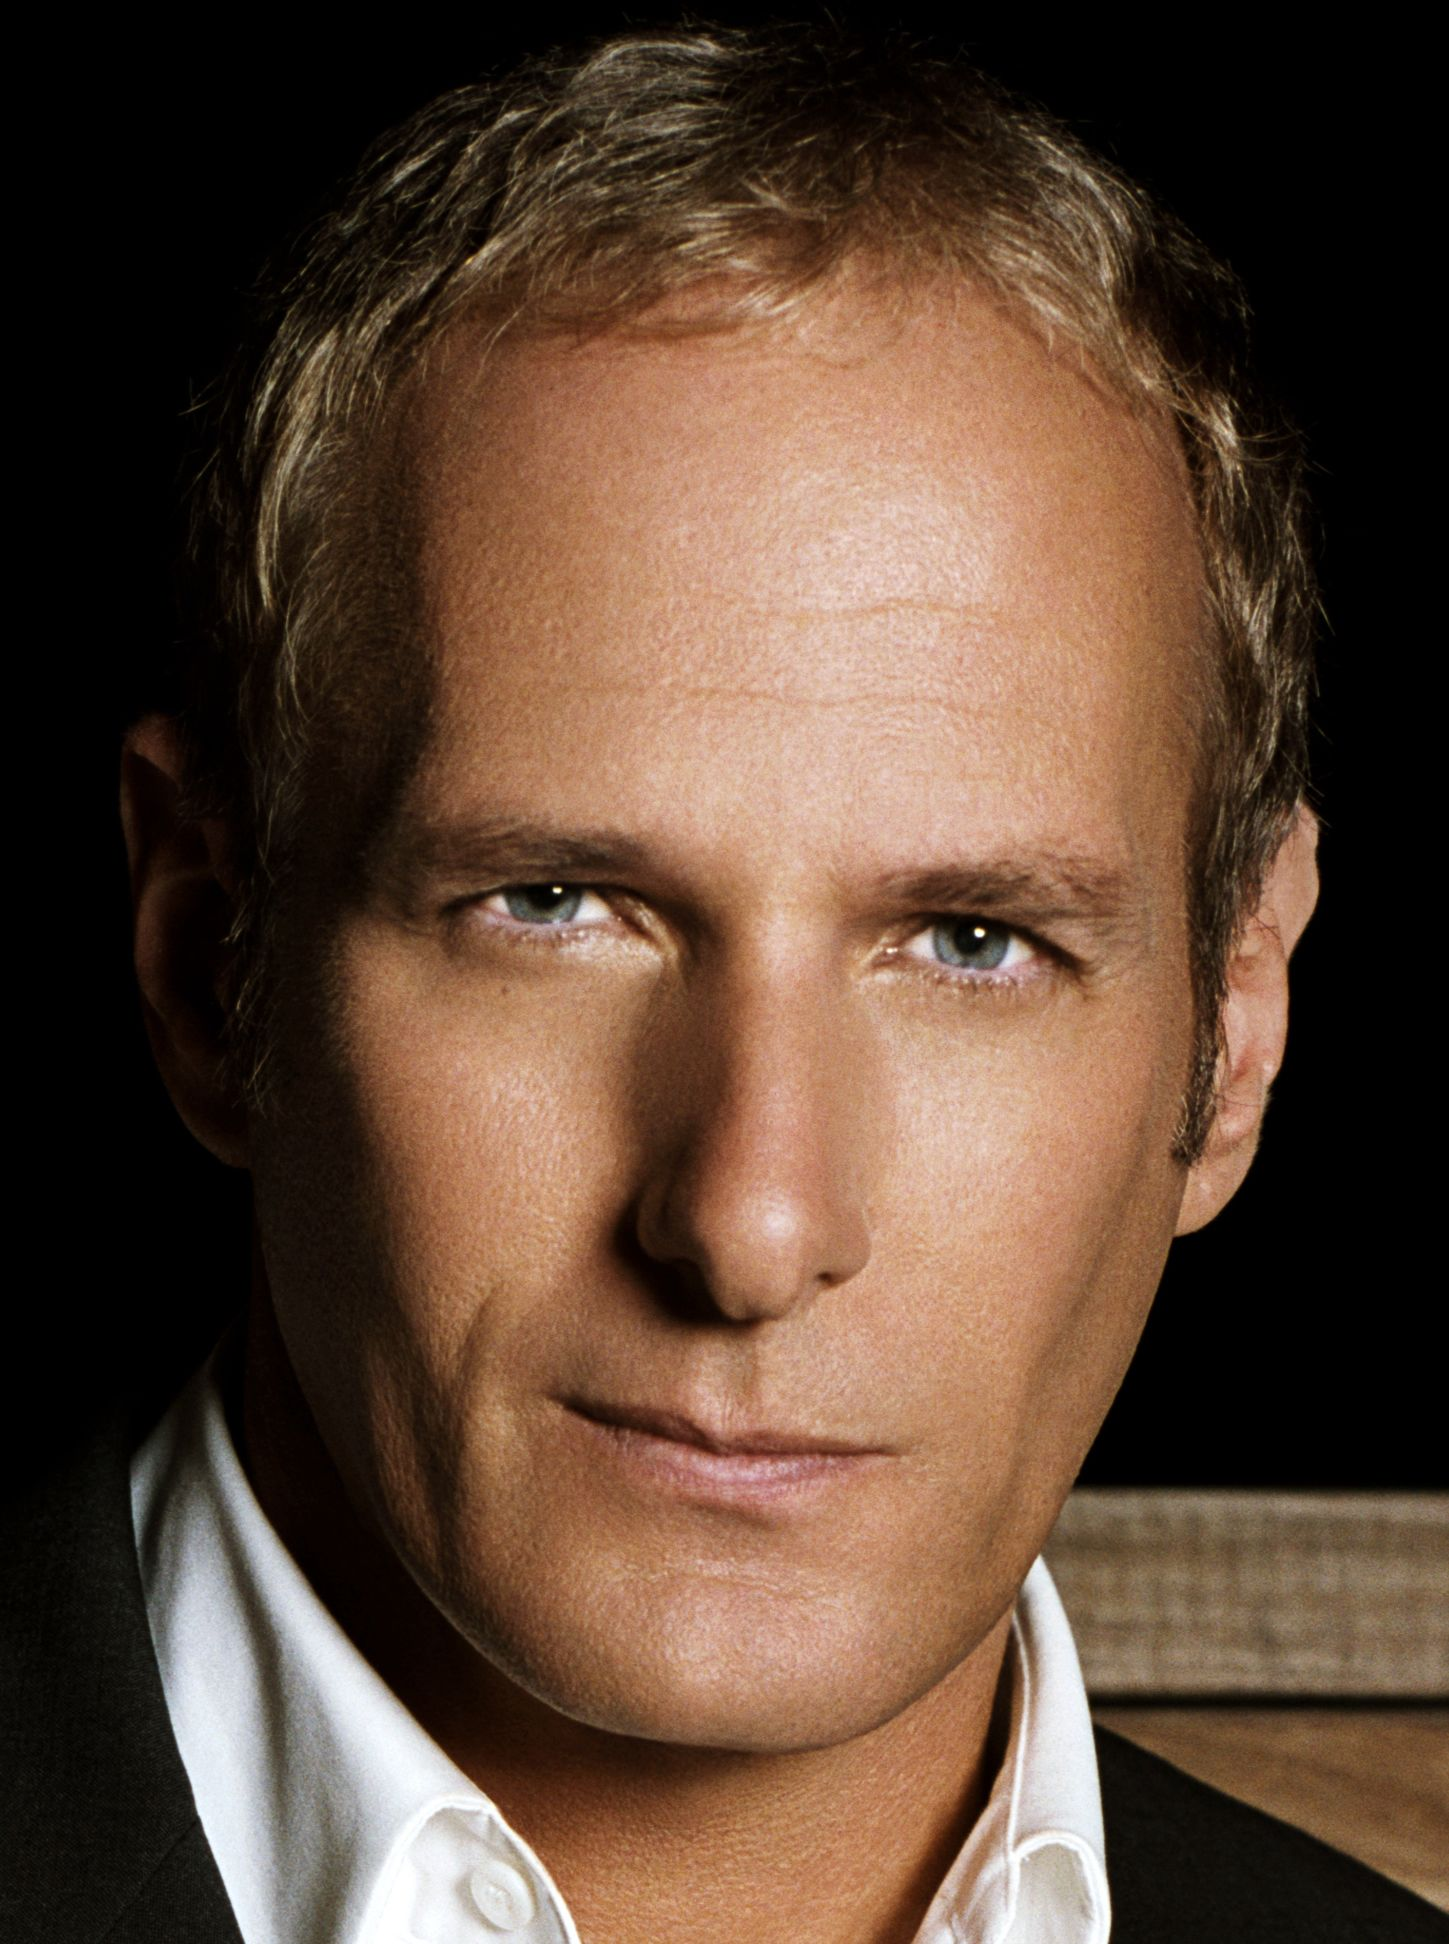 michael bolton missing you now